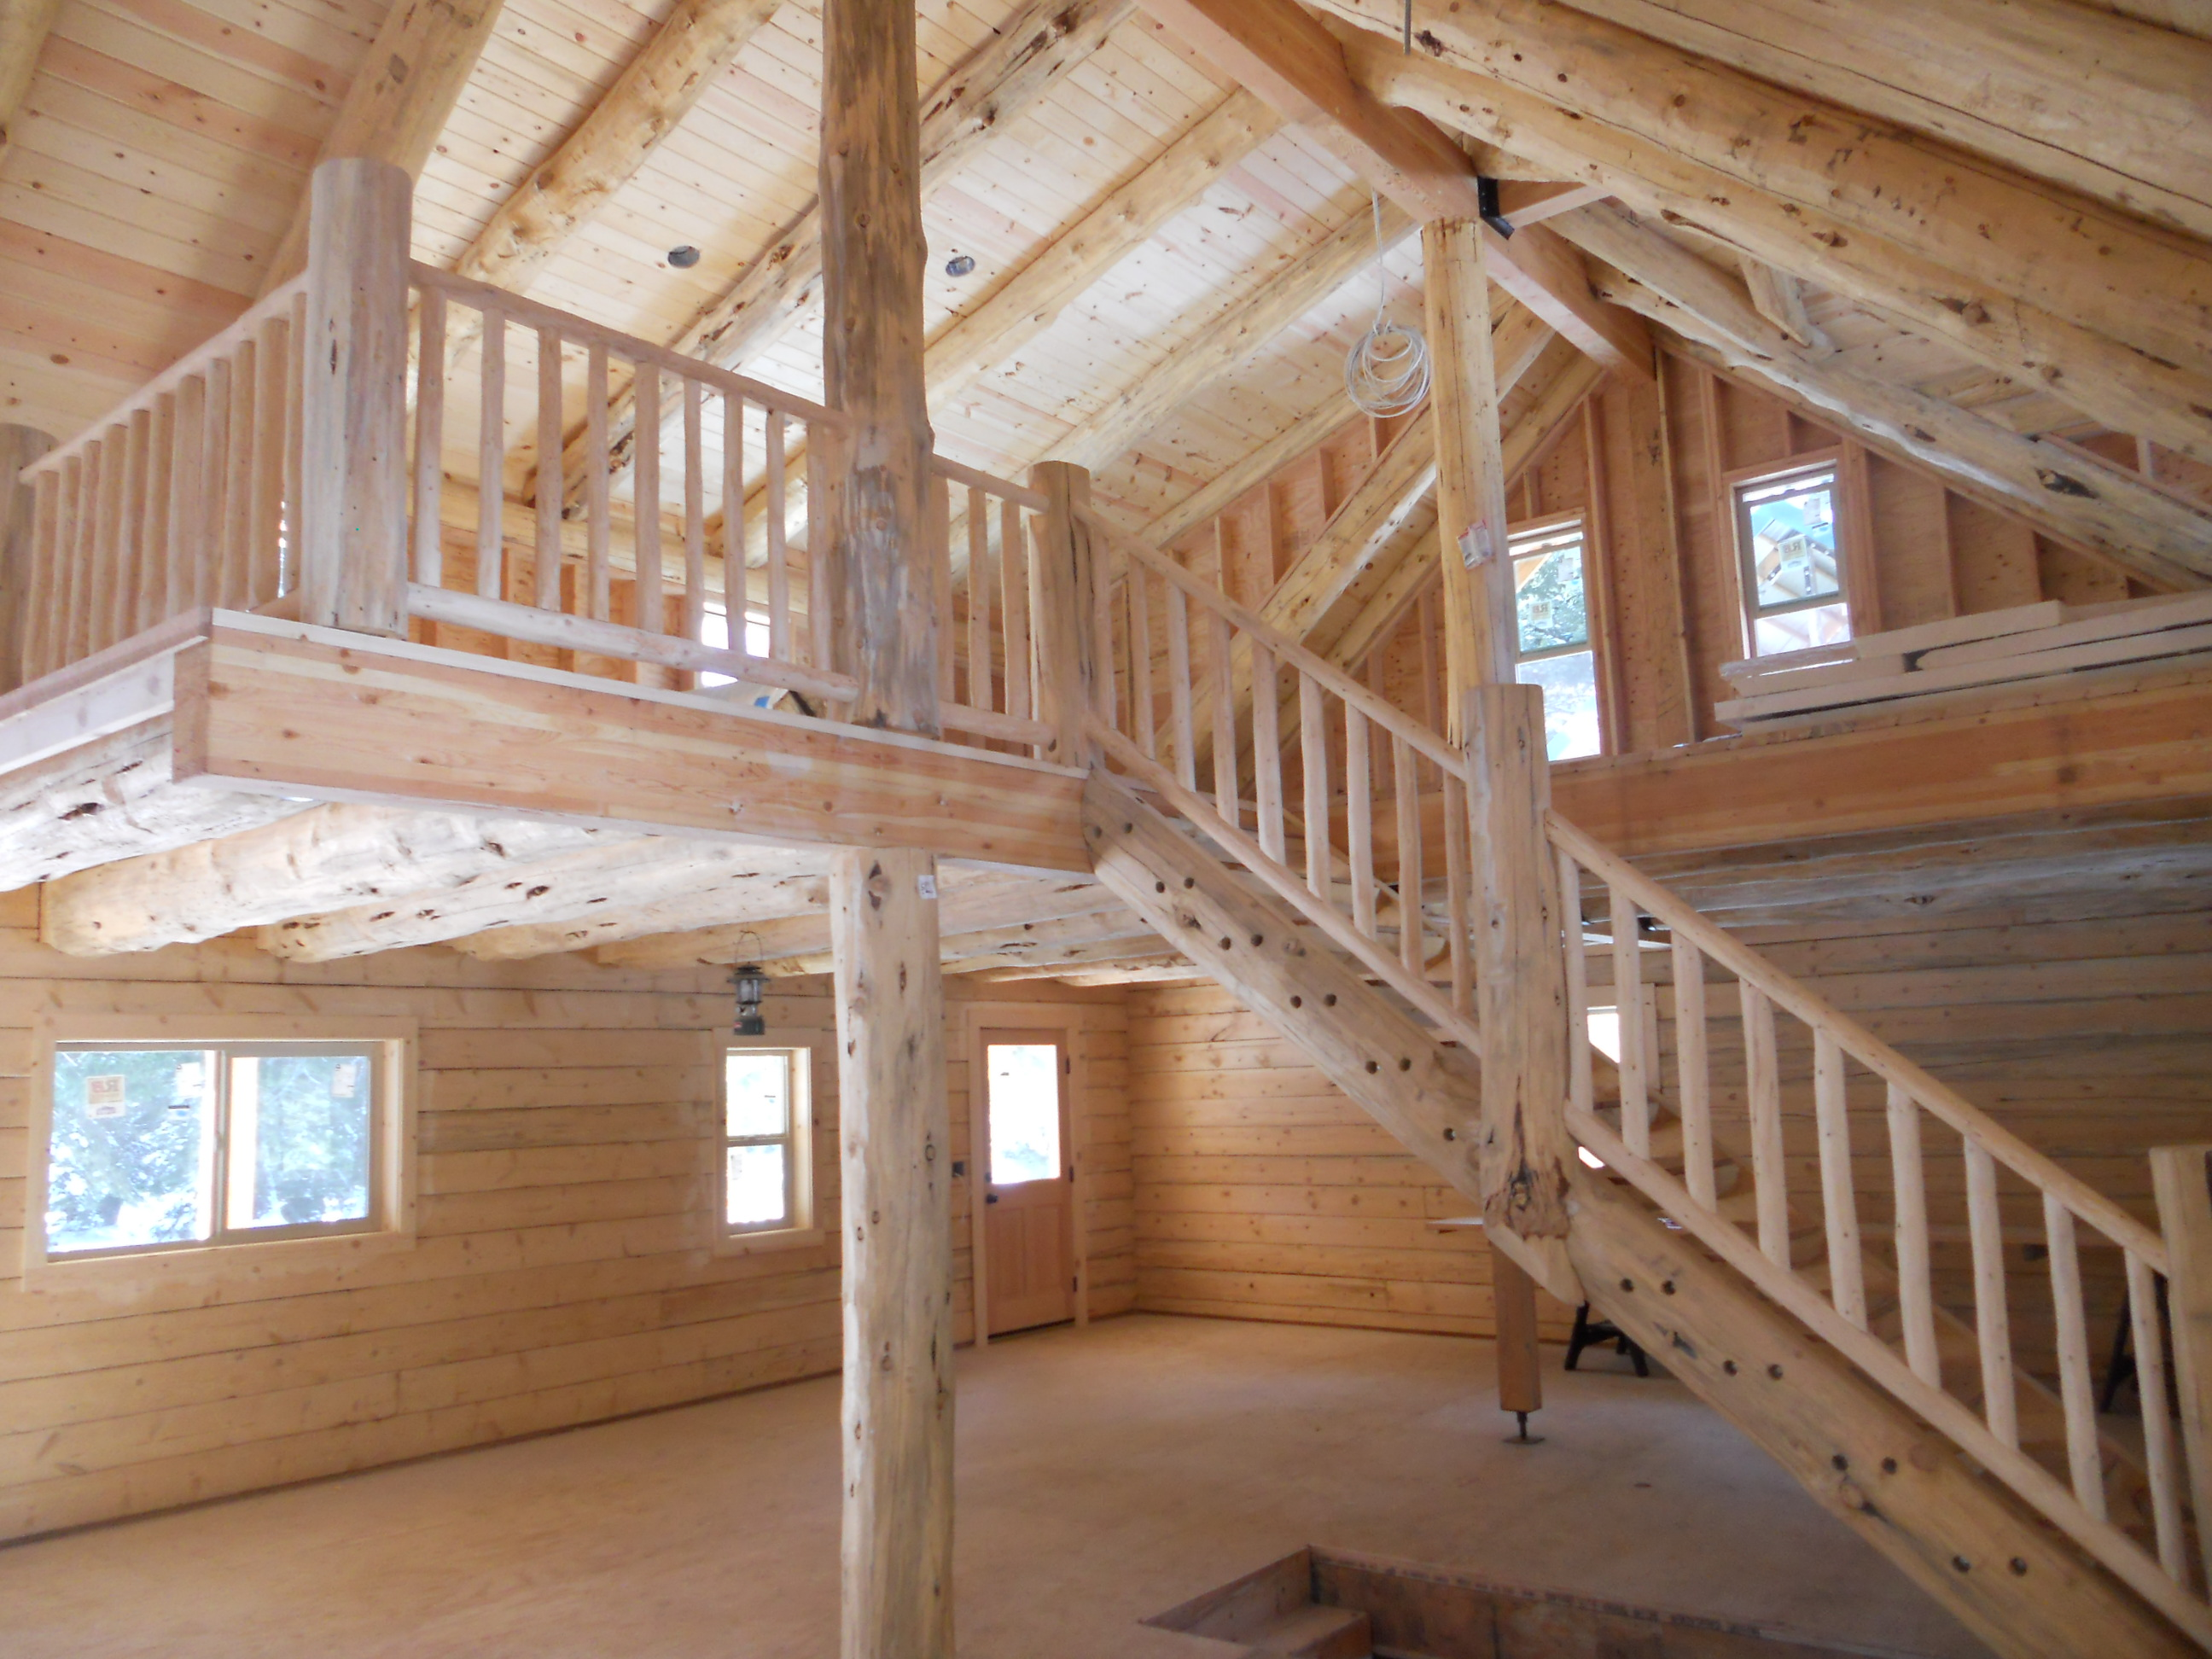 Ordinary log cabin floor plans with basement 2 dscn1330 for Log cabin plans with basement